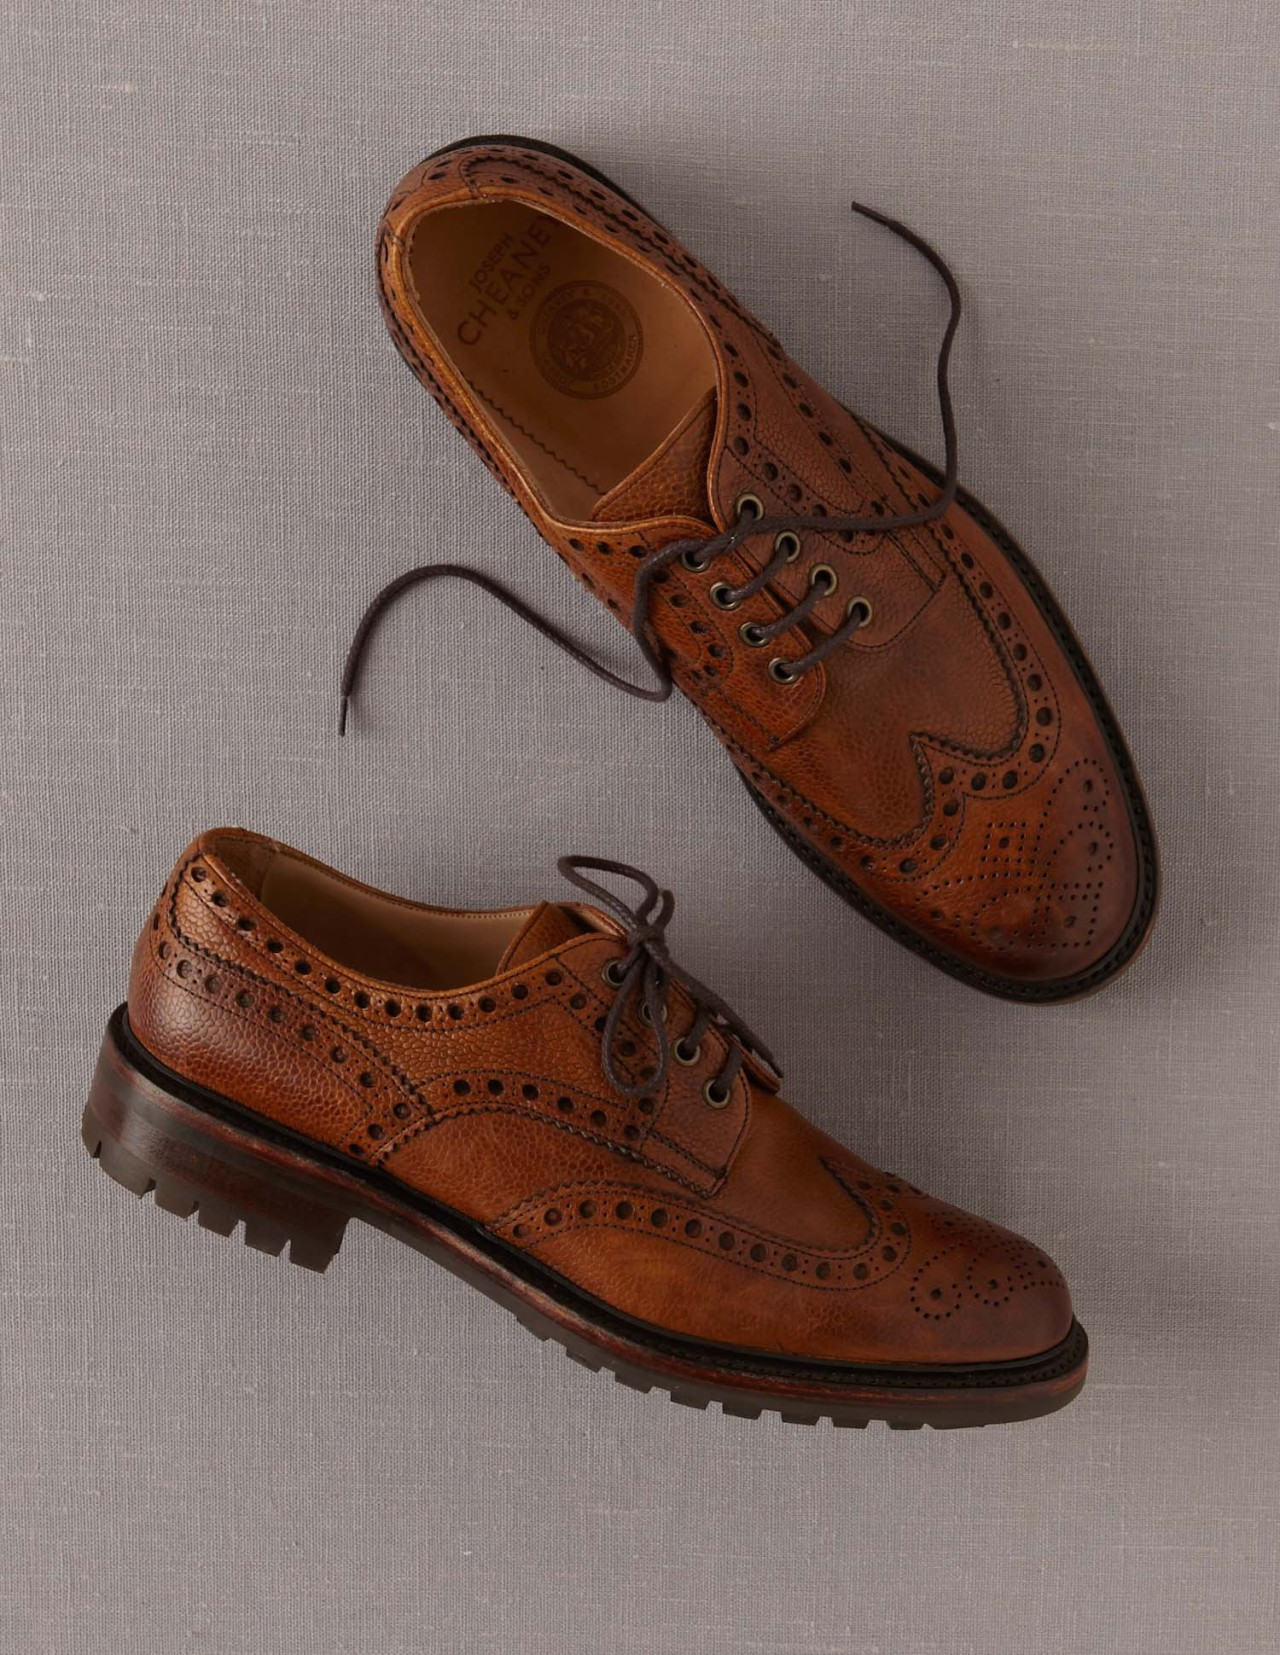 A brogue and a brogue country boot in grain calf leather, hand crafted in Cheaney's Northamptonshire factory, England.